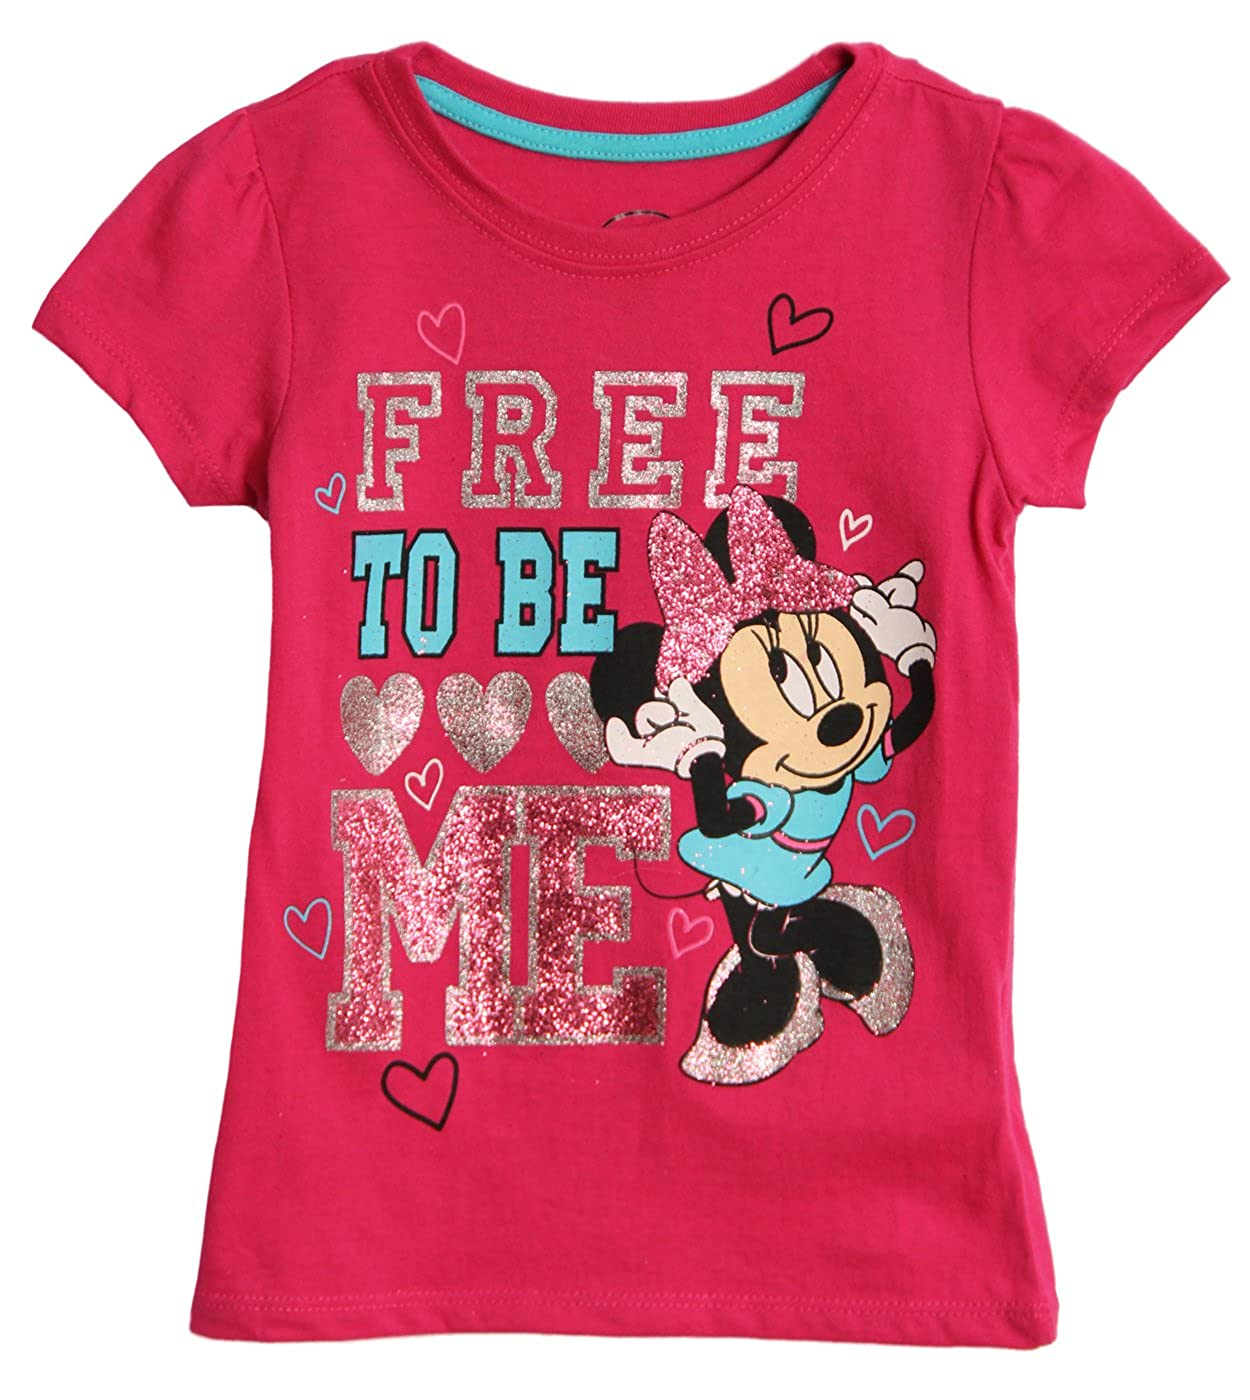 Minnie Mouse Toddler Girls Shirt Free to Be Me Tee Pink